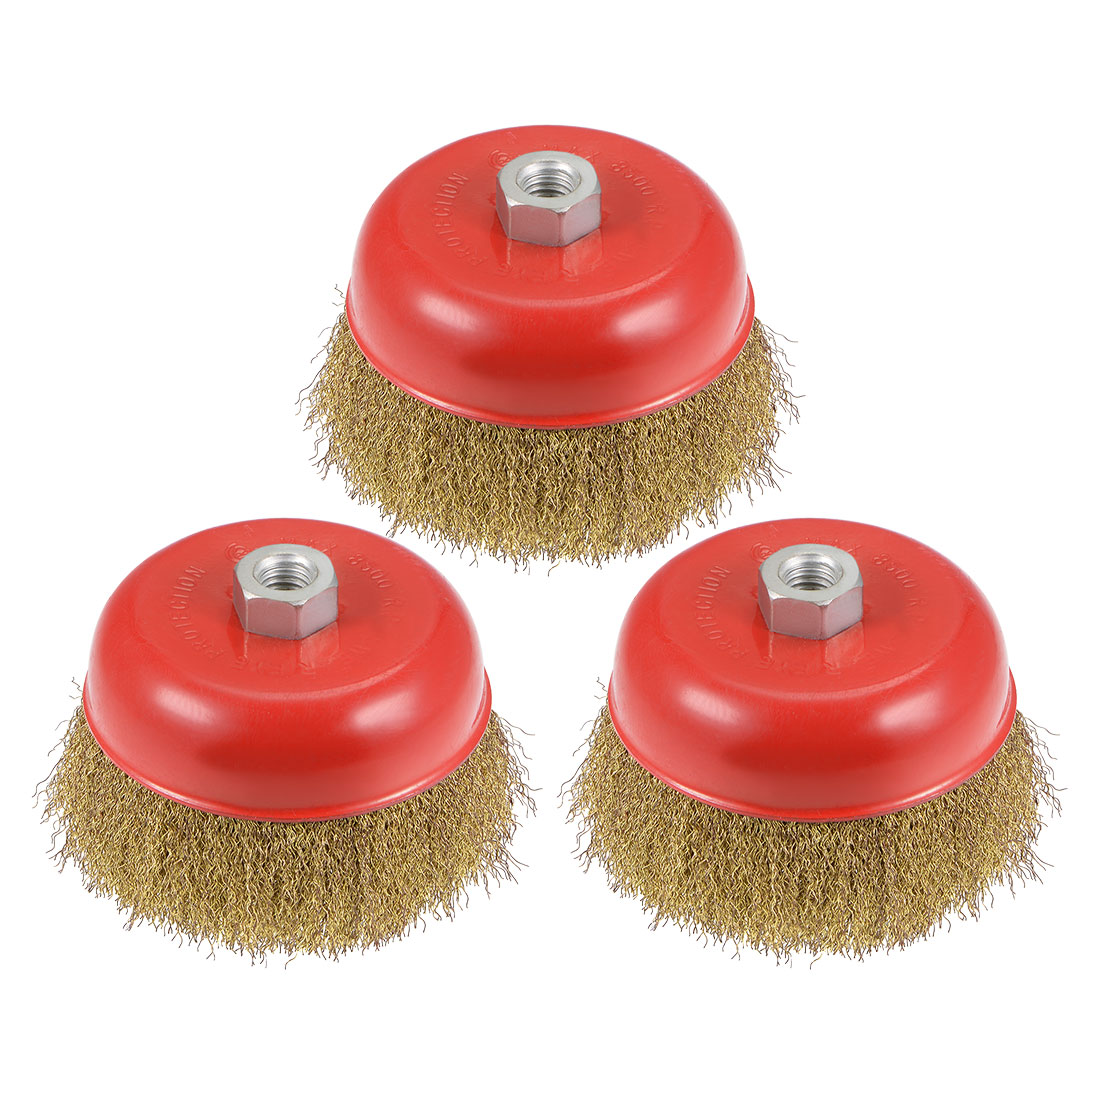 5-Inch Wire Cup Brush Brass Plated Crimped Steel with M14 Threaded Hole 3 Pcs